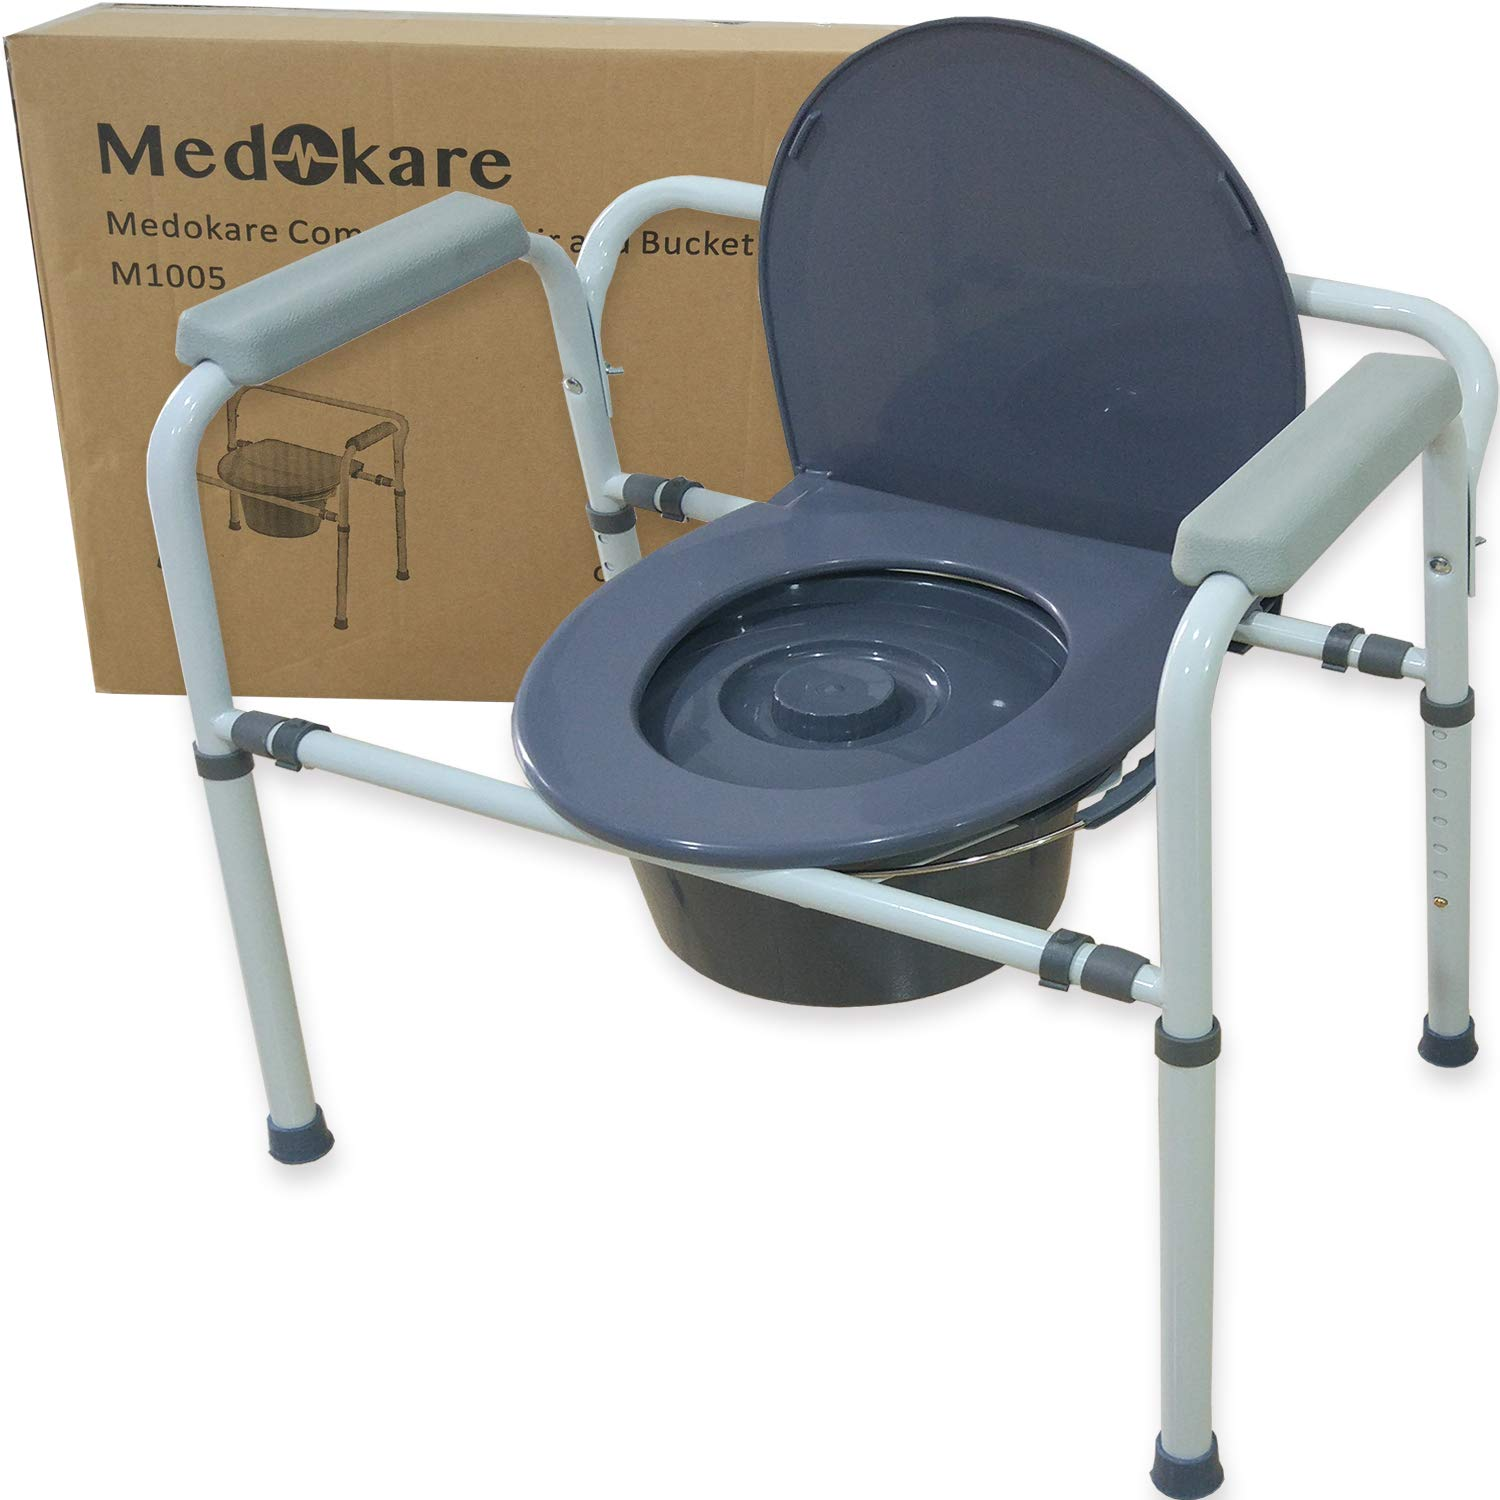 Medokare Bedside Commode Chair - Heavy-Duty Steel Commode Seat, Bedside Potty Chair for Adults, Medical Handicap Toilet Seat with Handles and Bucket by Medokare